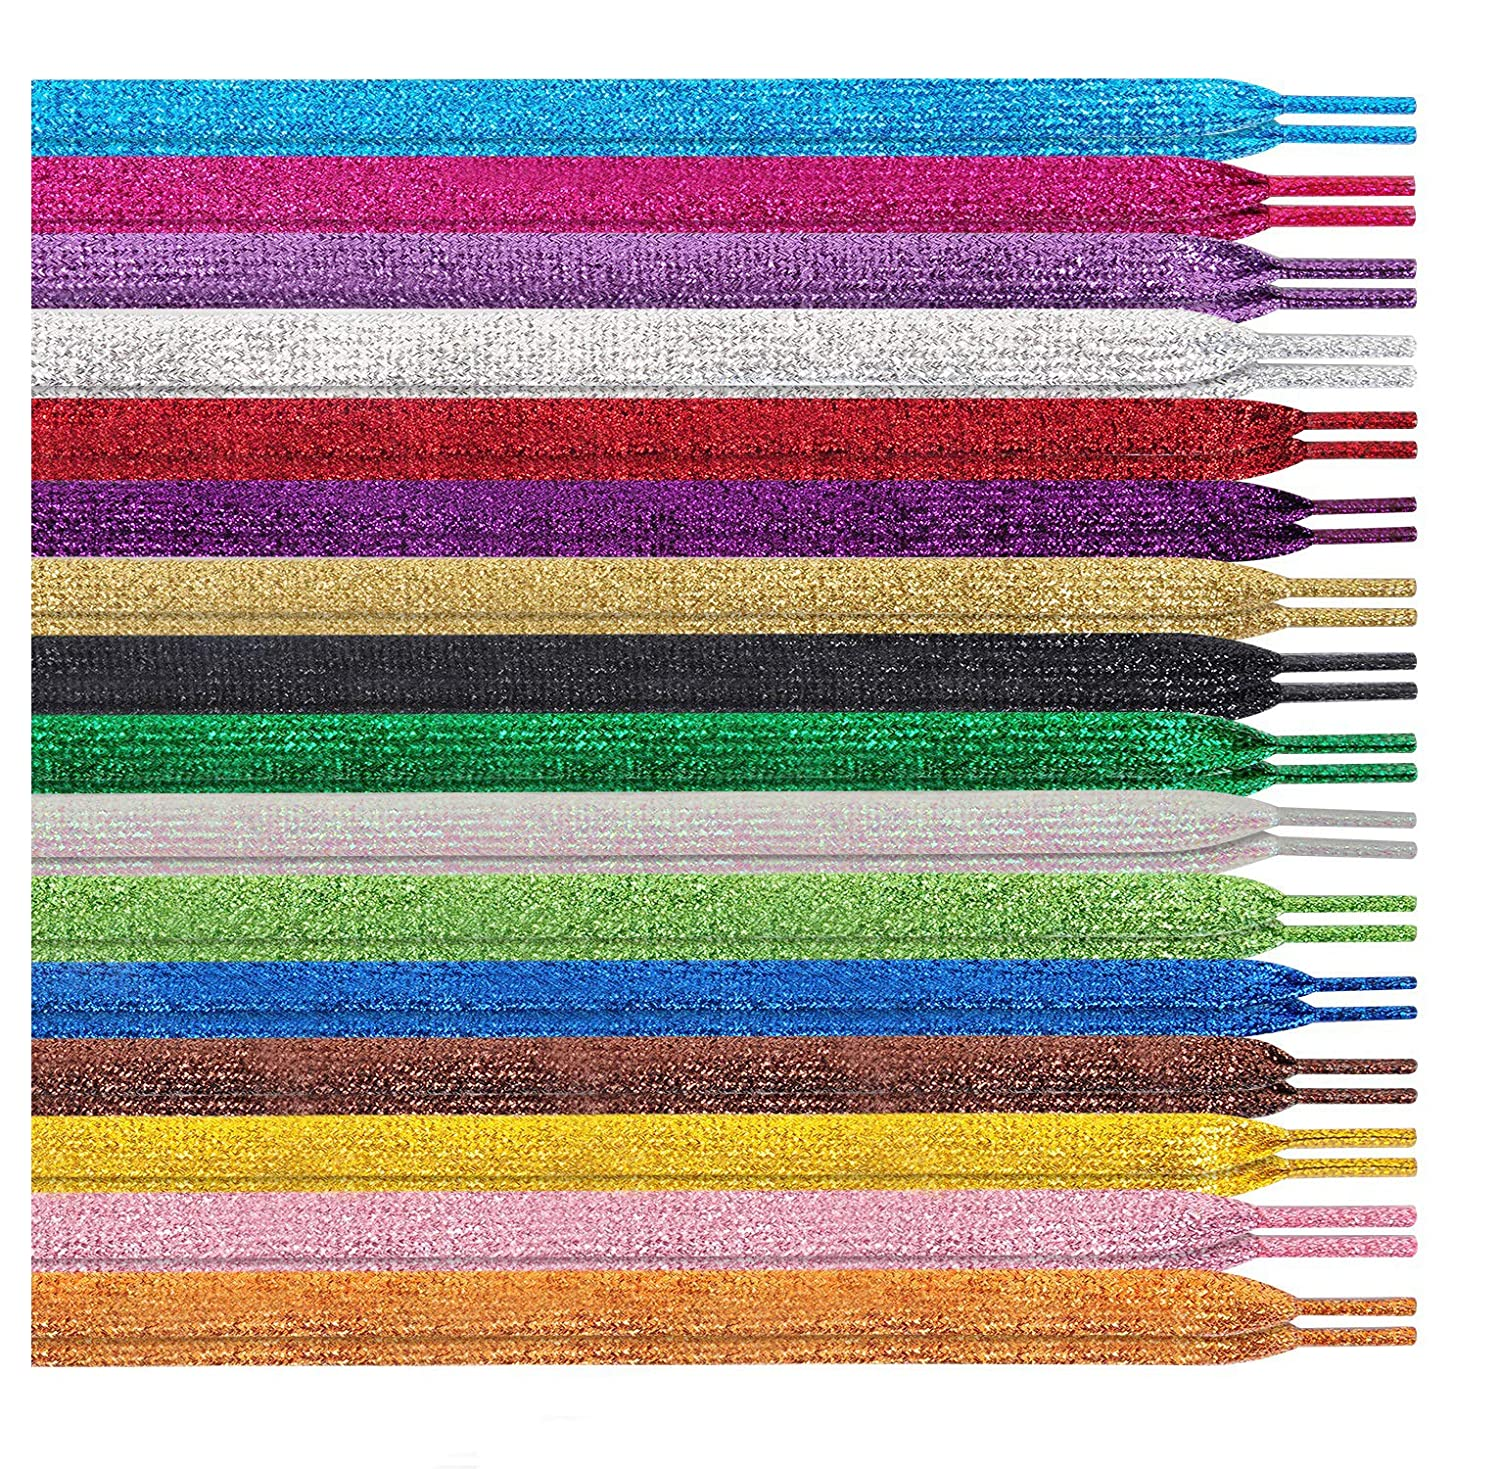 Shoe Laces NIKE PREMIUM SHOELACES Multi Colors and Variations Sz 39 45 or 54 All Prints Clothing, Shoes & Accessories